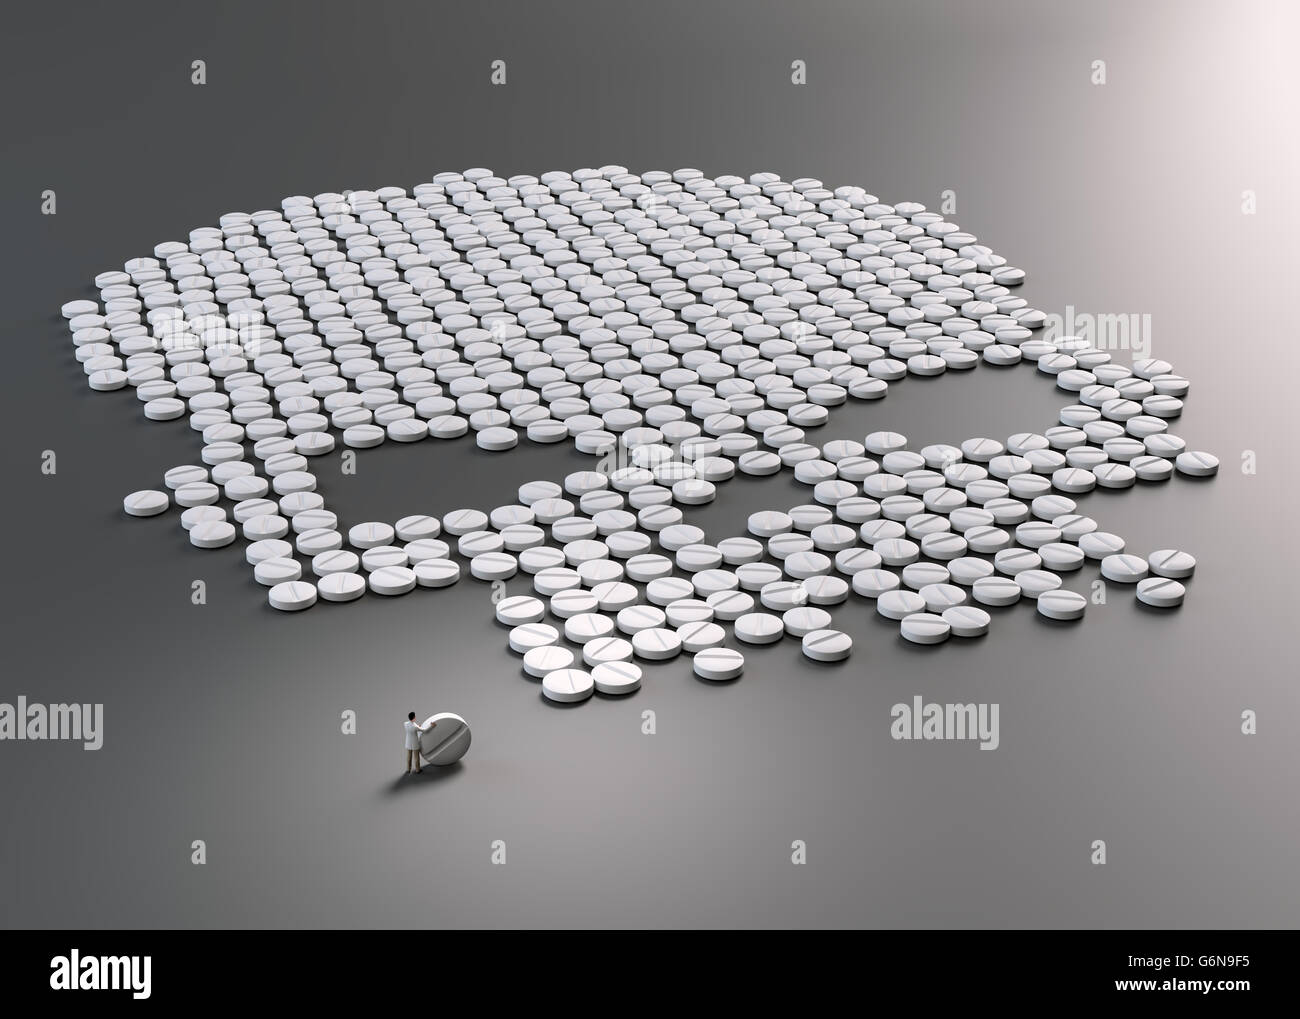 Pills forming a skull symbol - drug abuse concept 3D illustration - Stock Image